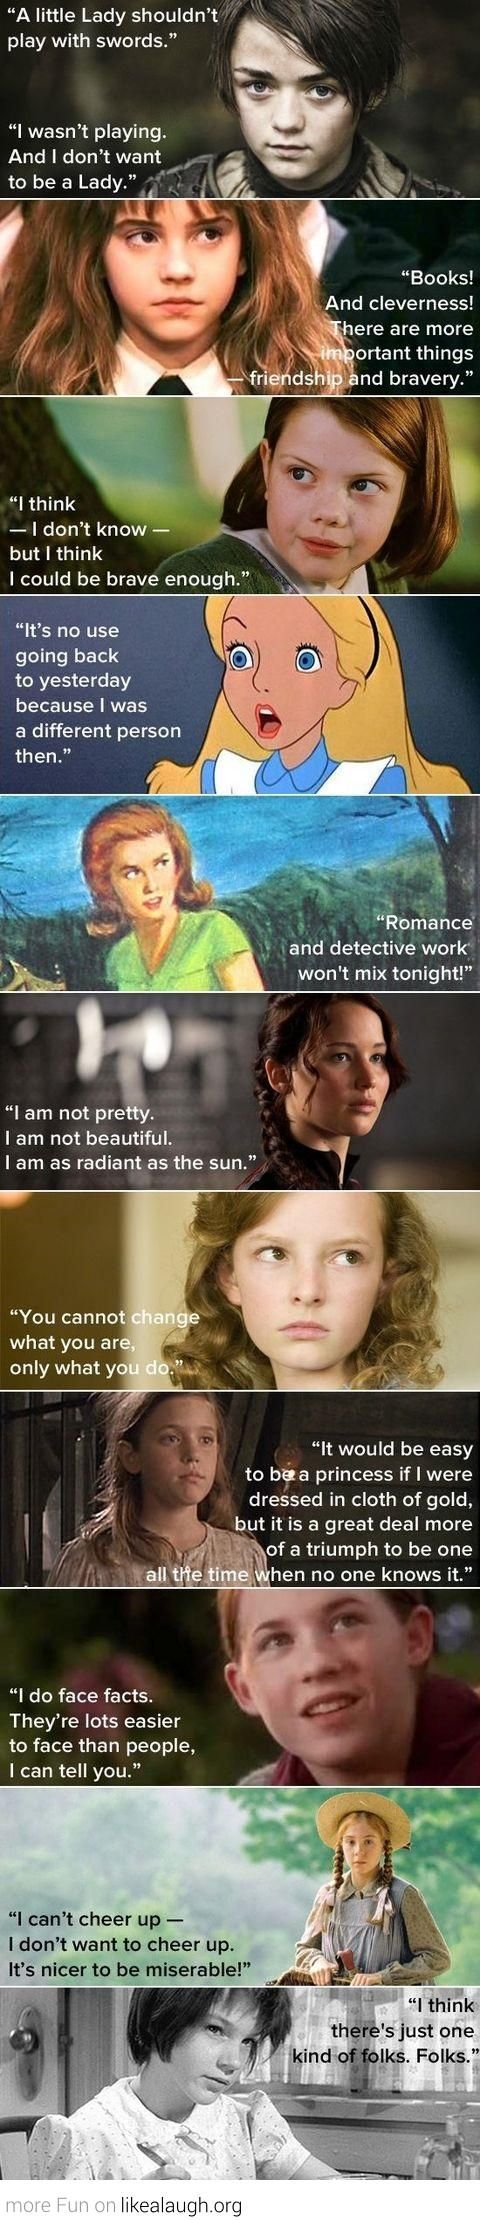 Young Literary Heroines: Arya (A Song of Ice and Fire), Hermione (Harry Potter), Lucy (The Lion, the Witch, and the Wardrobe), Alice (Alice in Wonderland), Nancy (Nancy Drew), Katniss (The Hunger Games), Lyra (The Golden Compass), Sara (A Little Princess), Meg (A Wrinkle in Time), Anne (Anne of Green Gables), Scout (To Kill a Mockingbird).